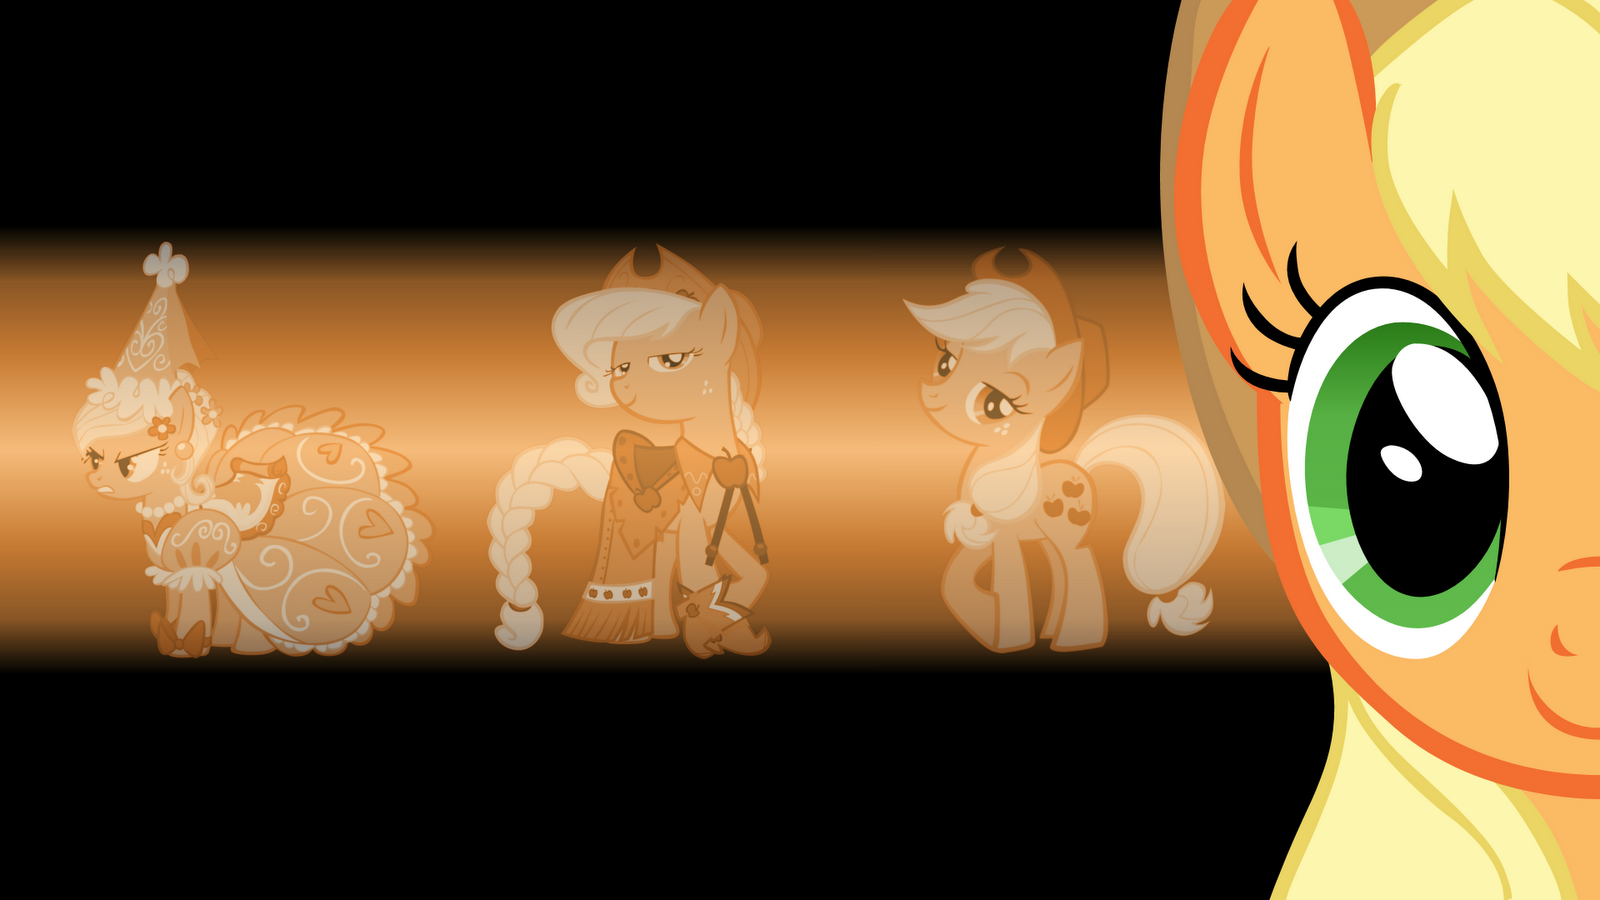 http://2.bp.blogspot.com/-7ME55Sgaq9c/UJB9CUqcyII/AAAAAAAAAk4/yIBka-KuLf8/s1600/83563-my-little-pony-friendship-is-magic-aj-wallpaper.png